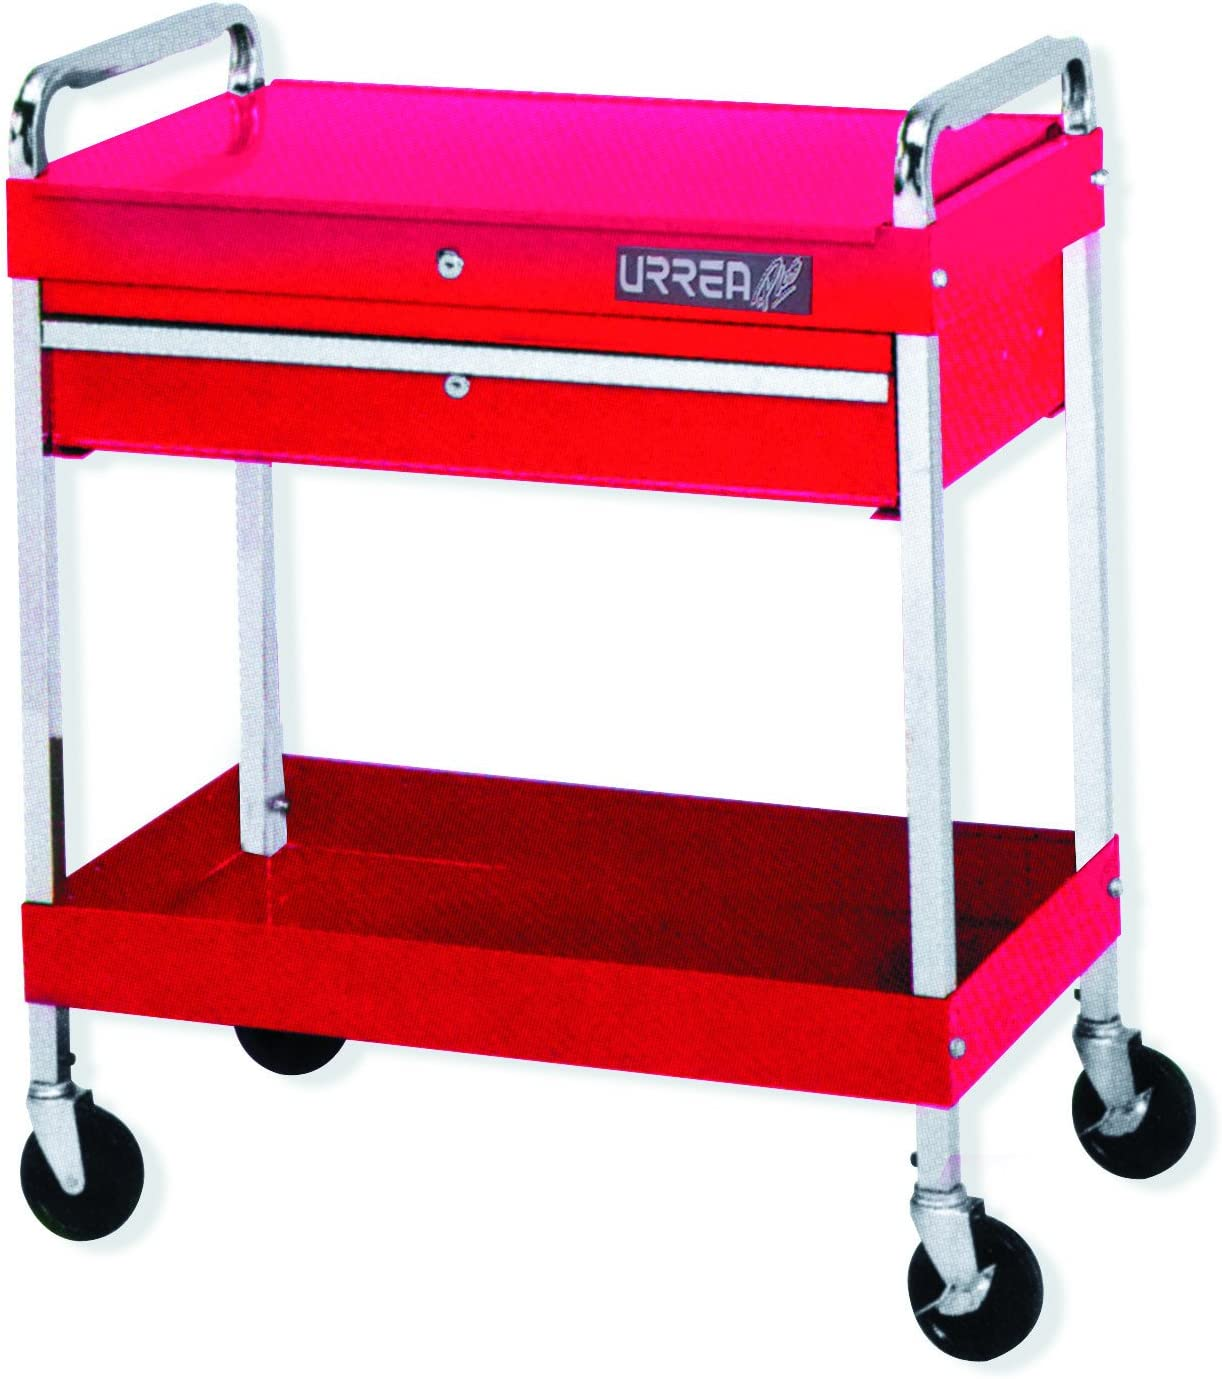 Urrea 9983 2 Topics on TV Shelf's and Cabinet Two Lowest price challenge Trays Utility